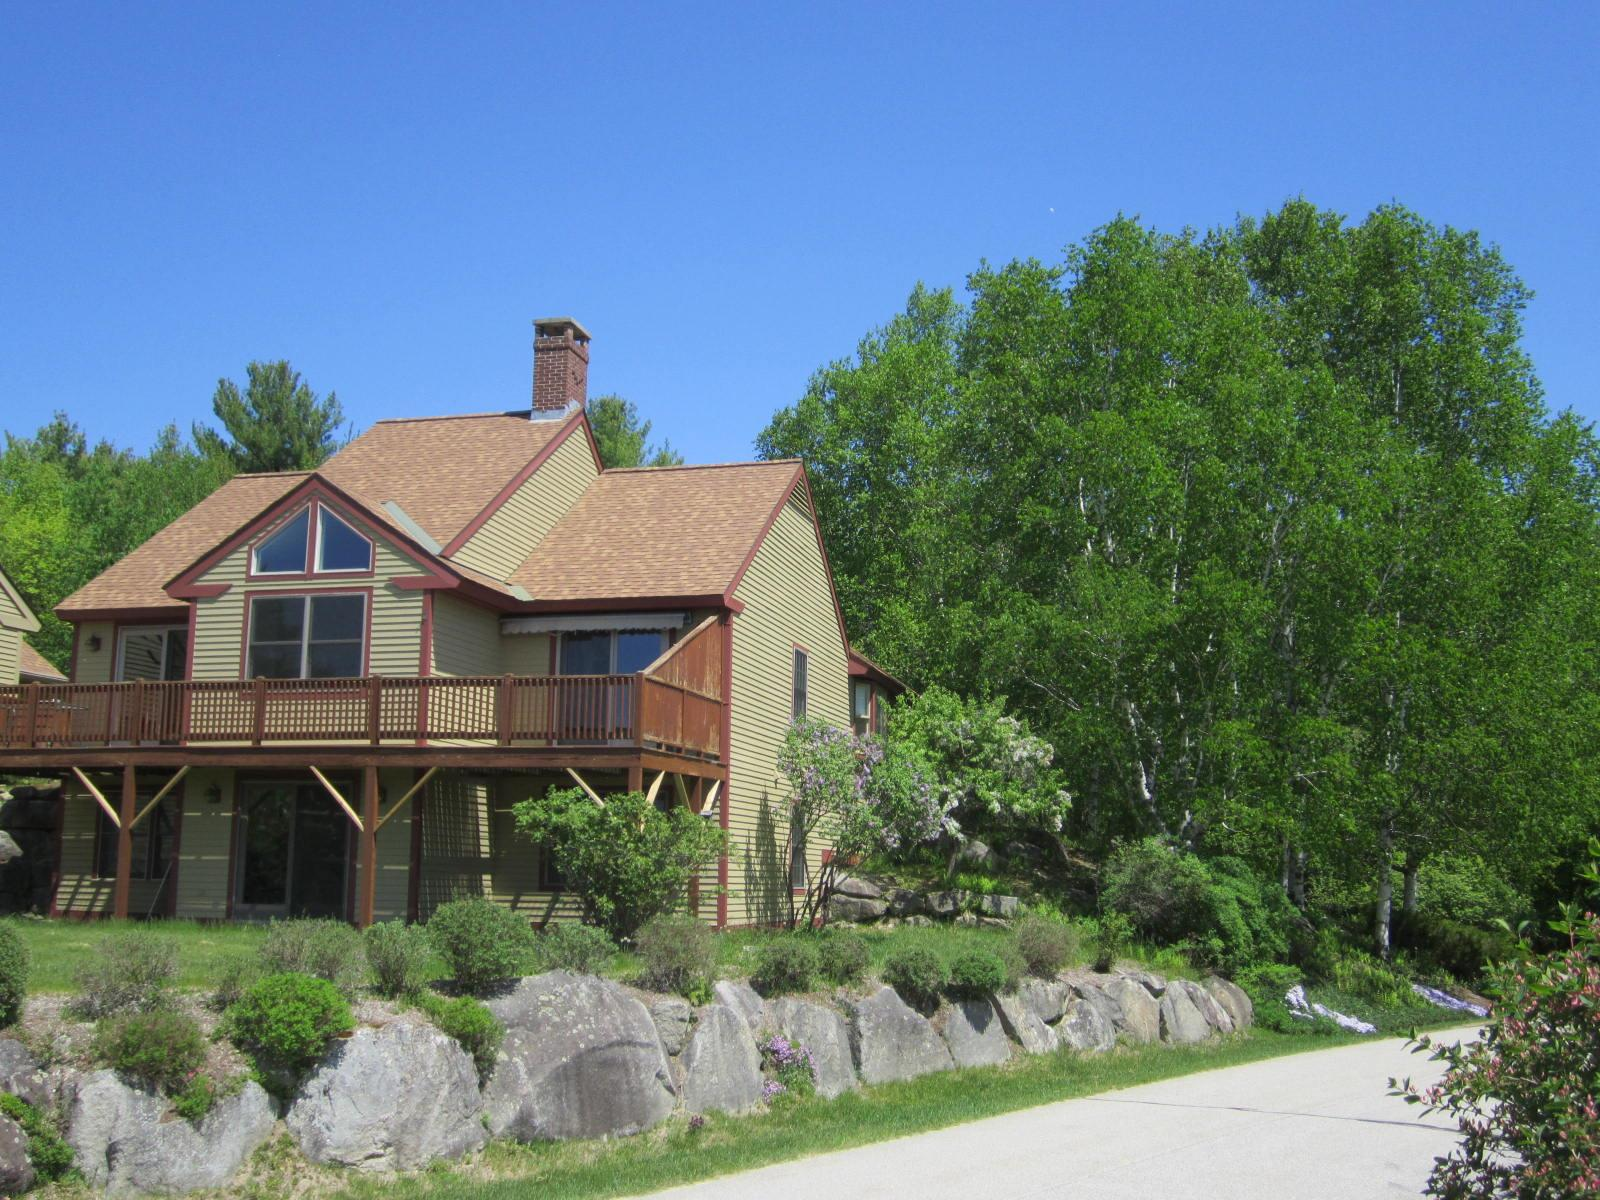 MLS 4807718: 30 Highland Ridge Road, New London NH